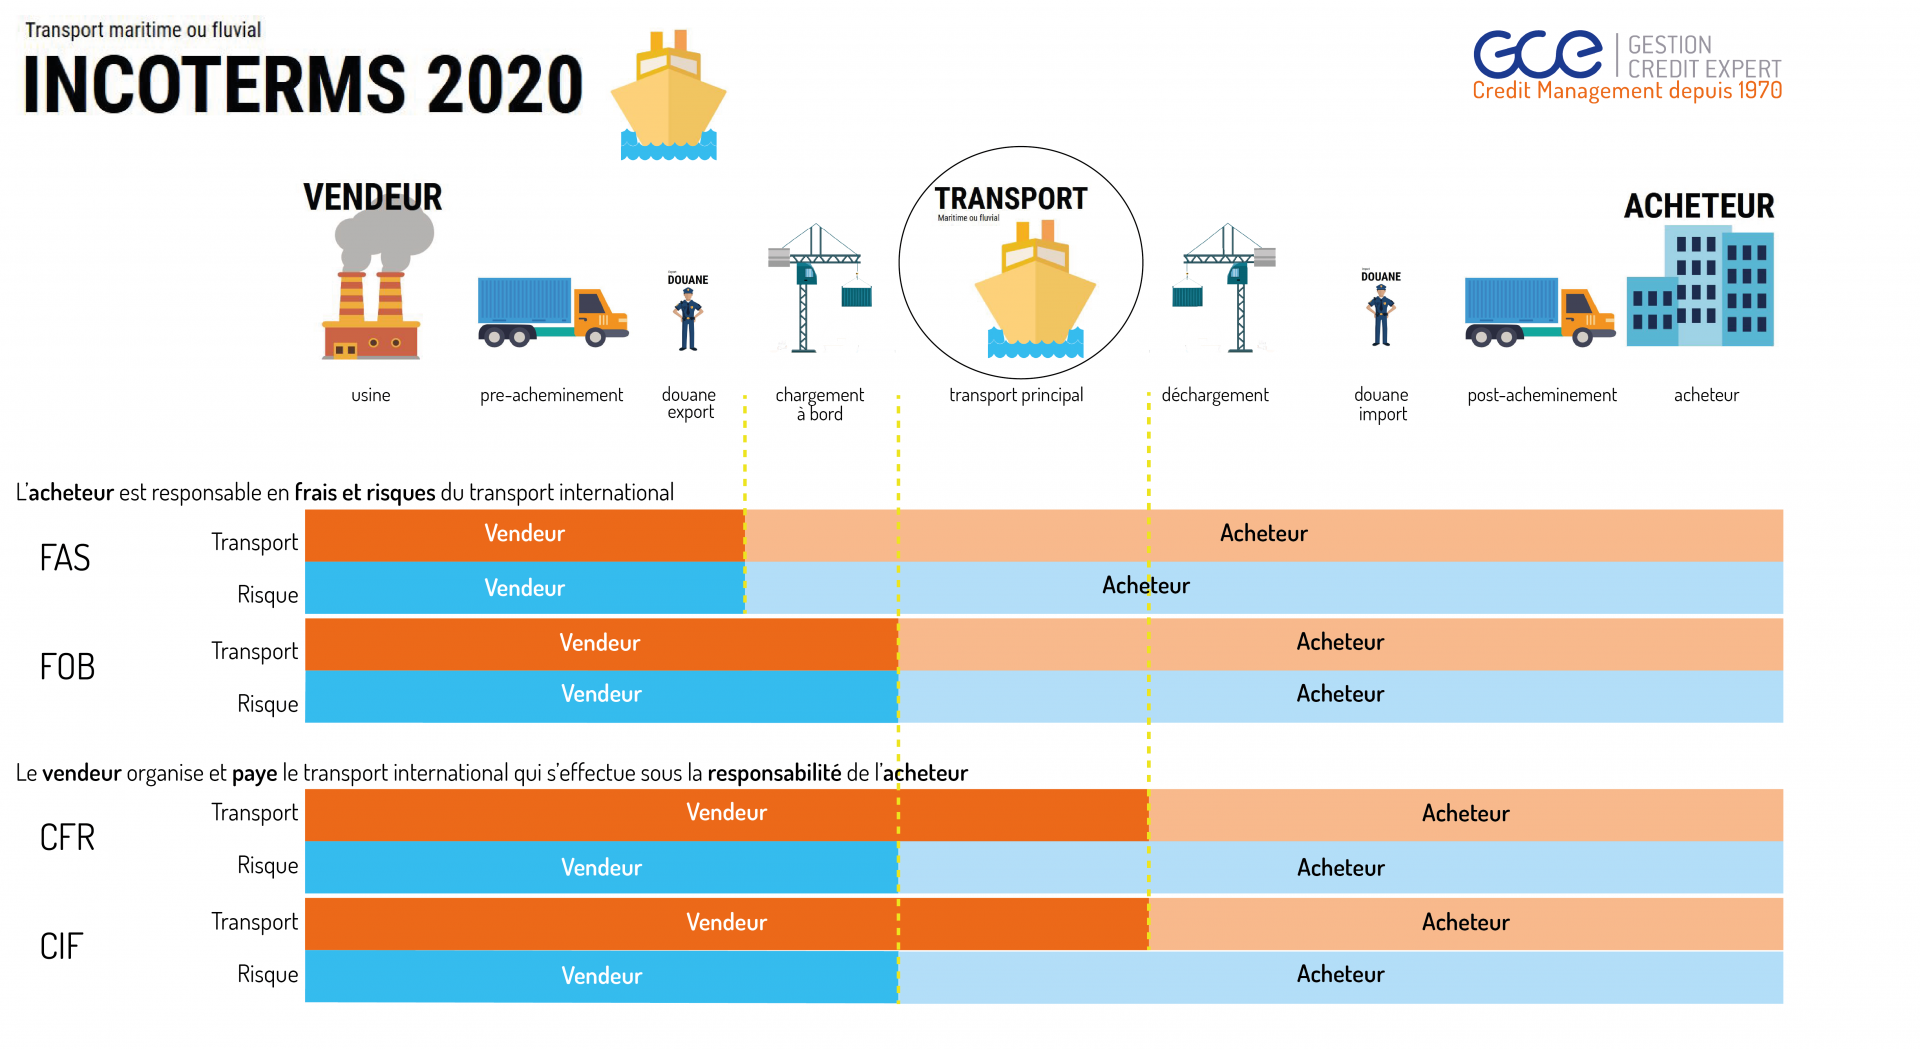 Incoterms 2020, transport maritime ou fluvial I GCE